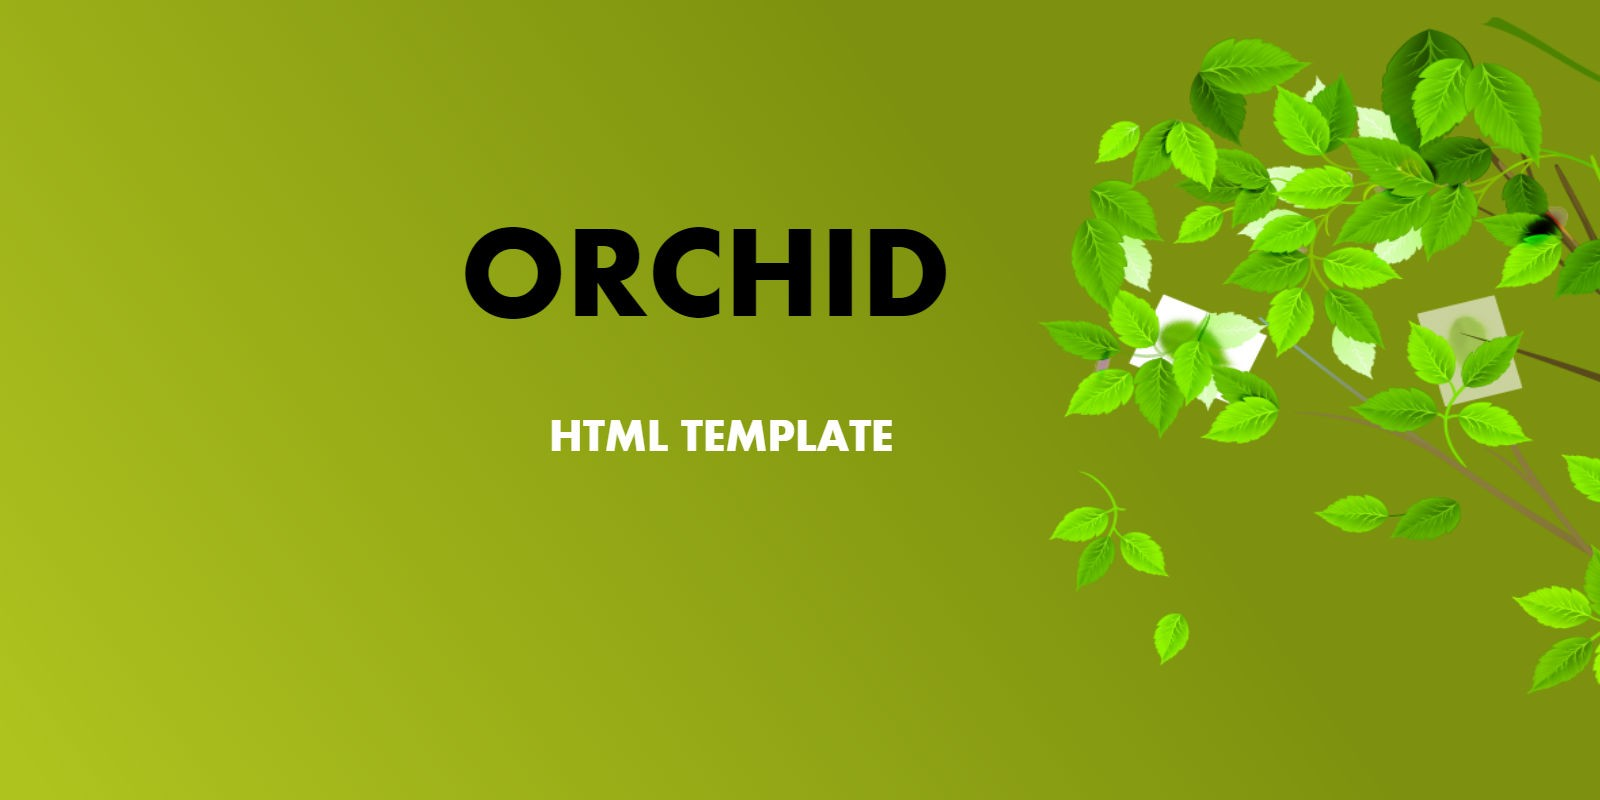 Orchid - HTML Template